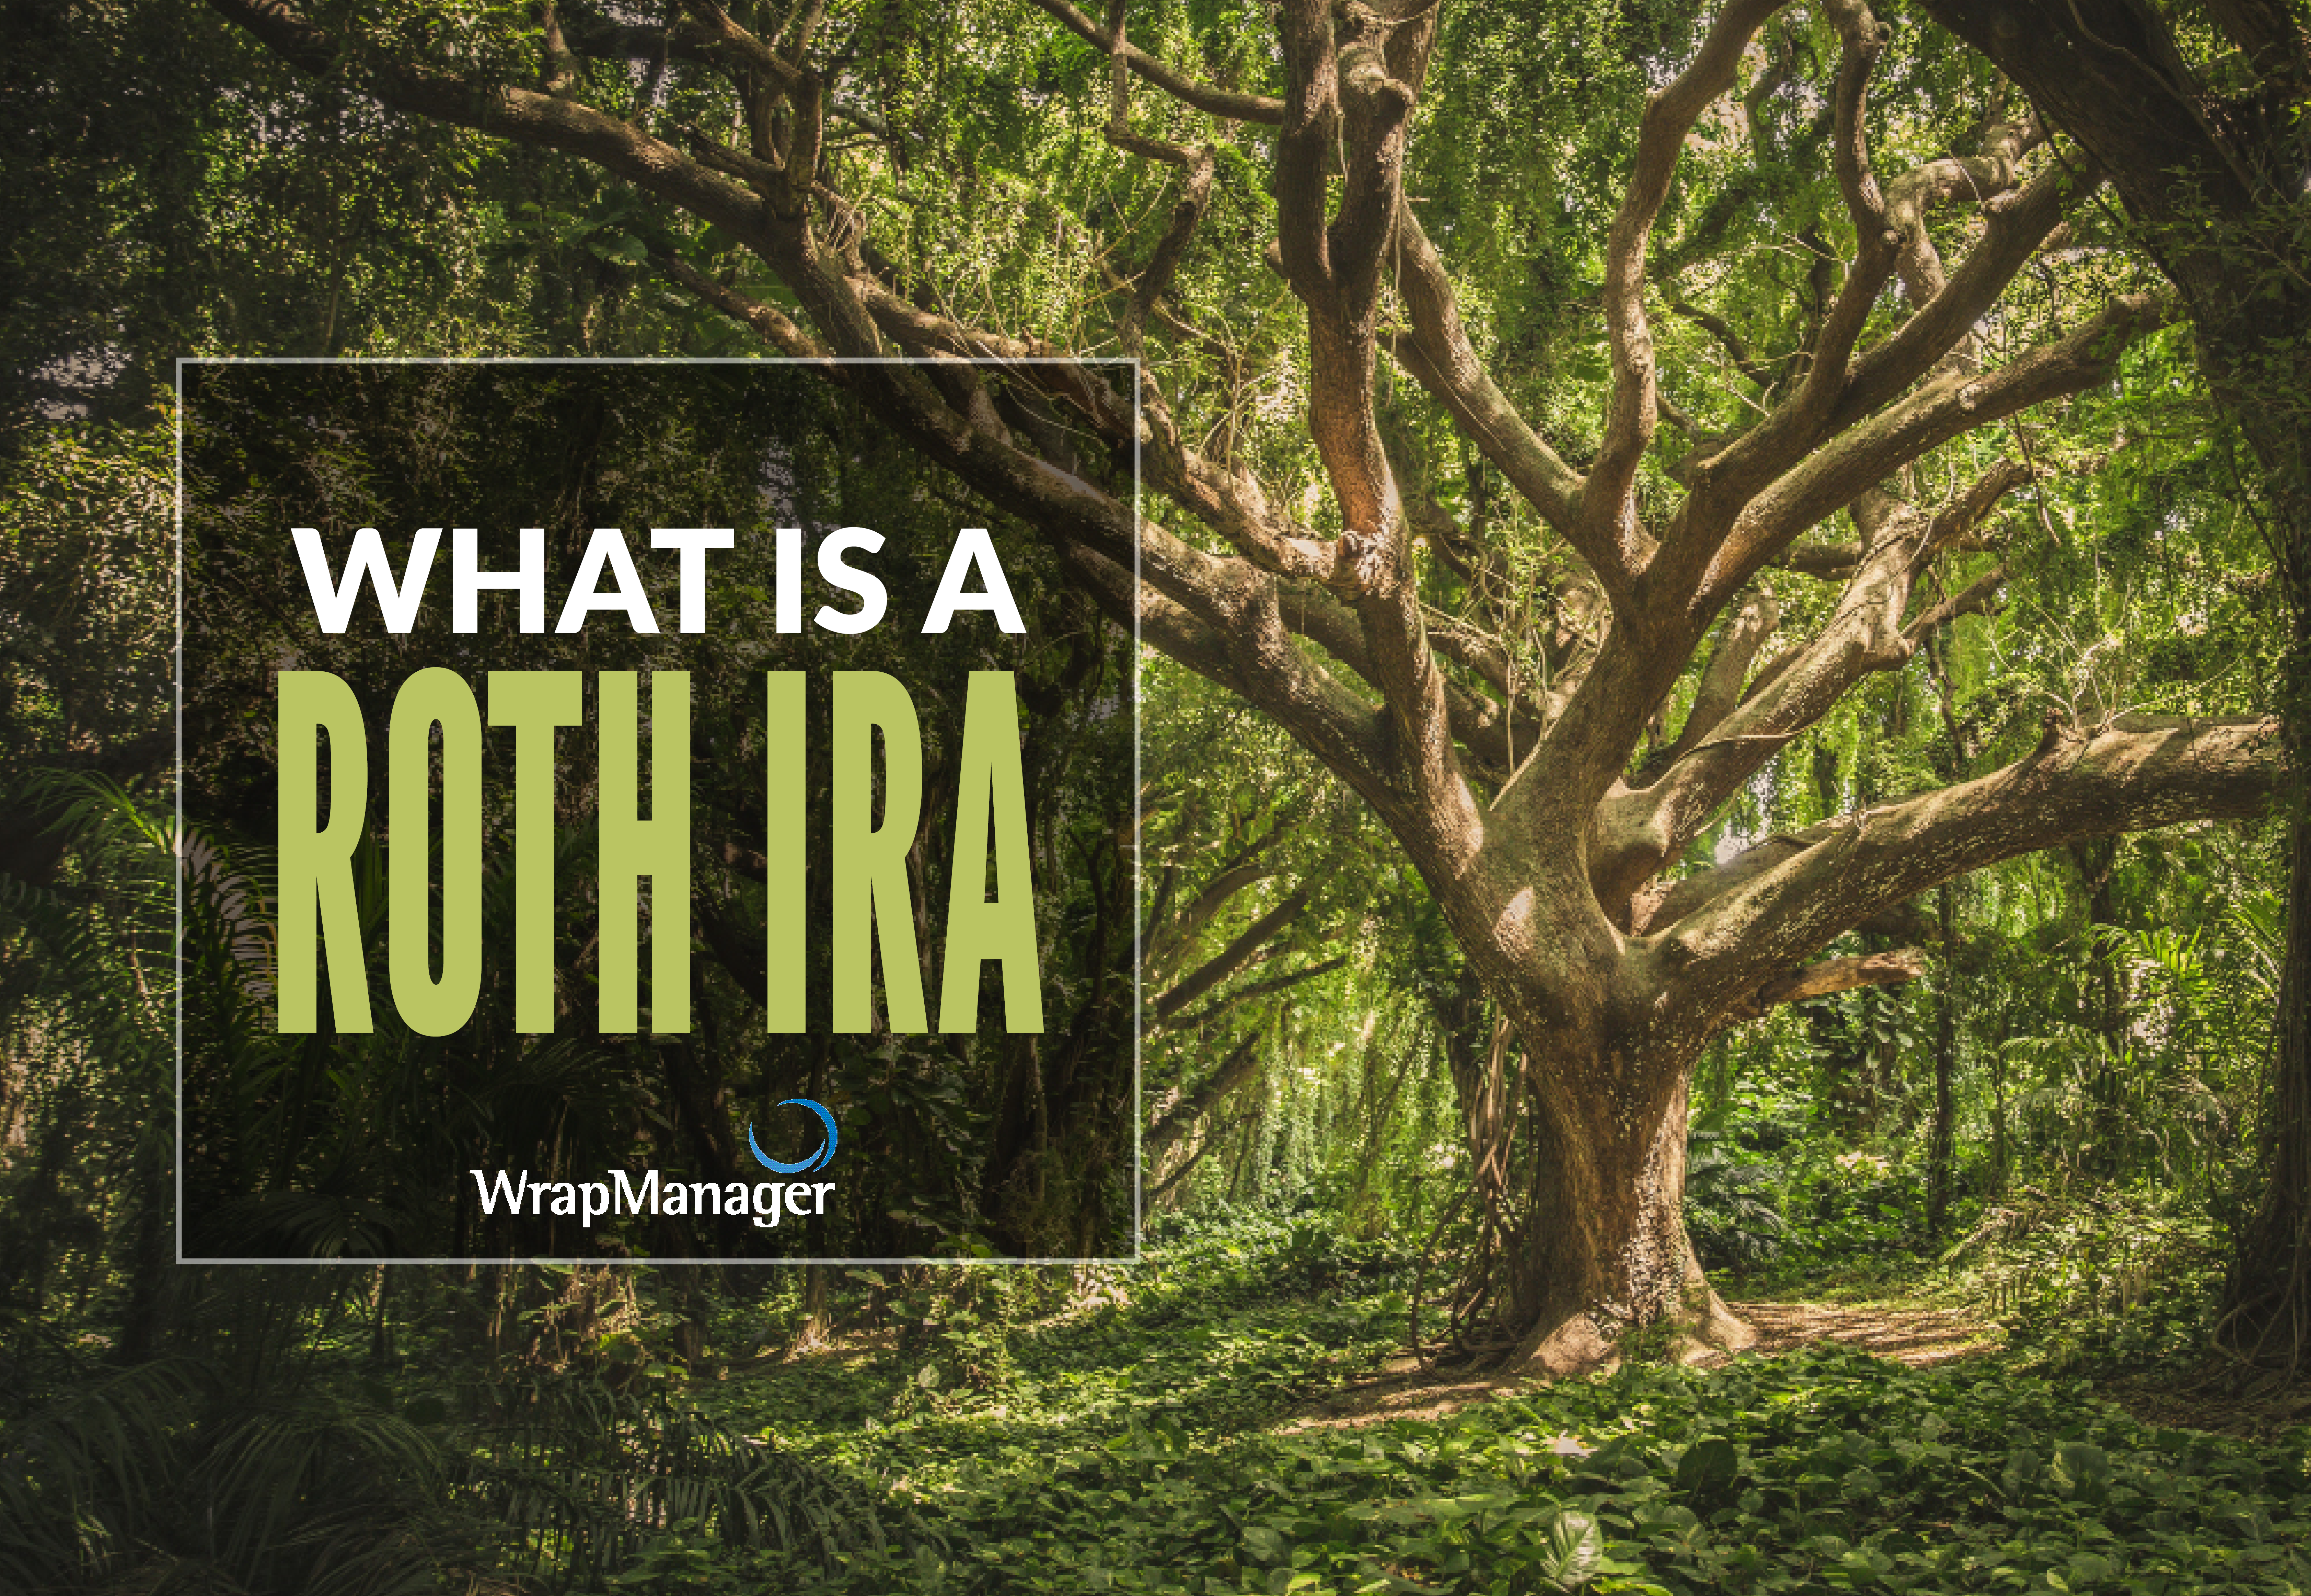 The Quick and Easy Guide to Roth IRAs